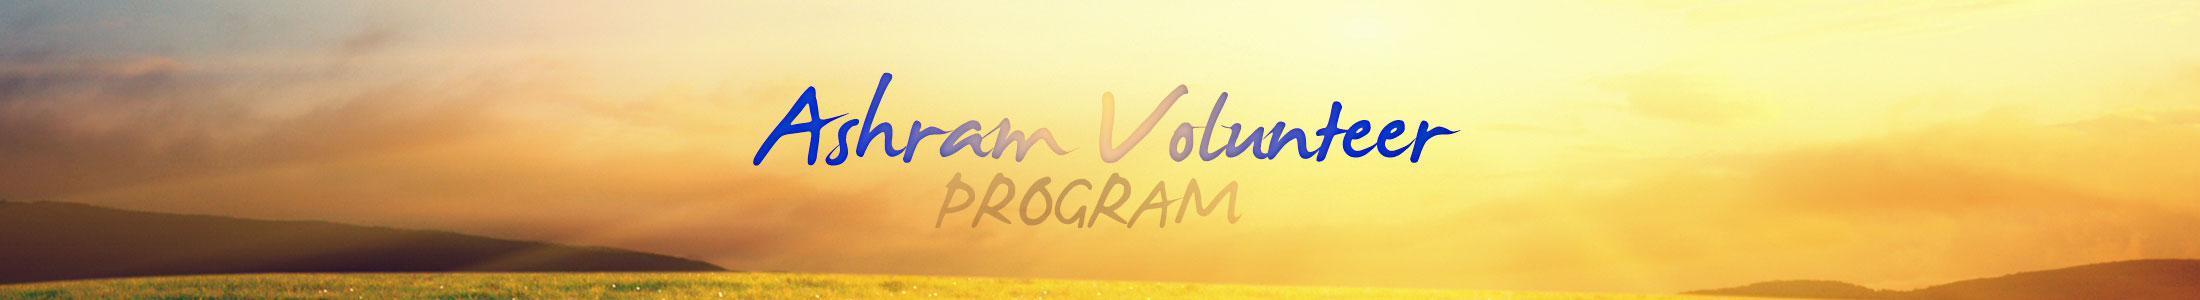 Ashram Volunteer - Volunteer at Ashram Spiritual Retreat Center Texas USA New York California